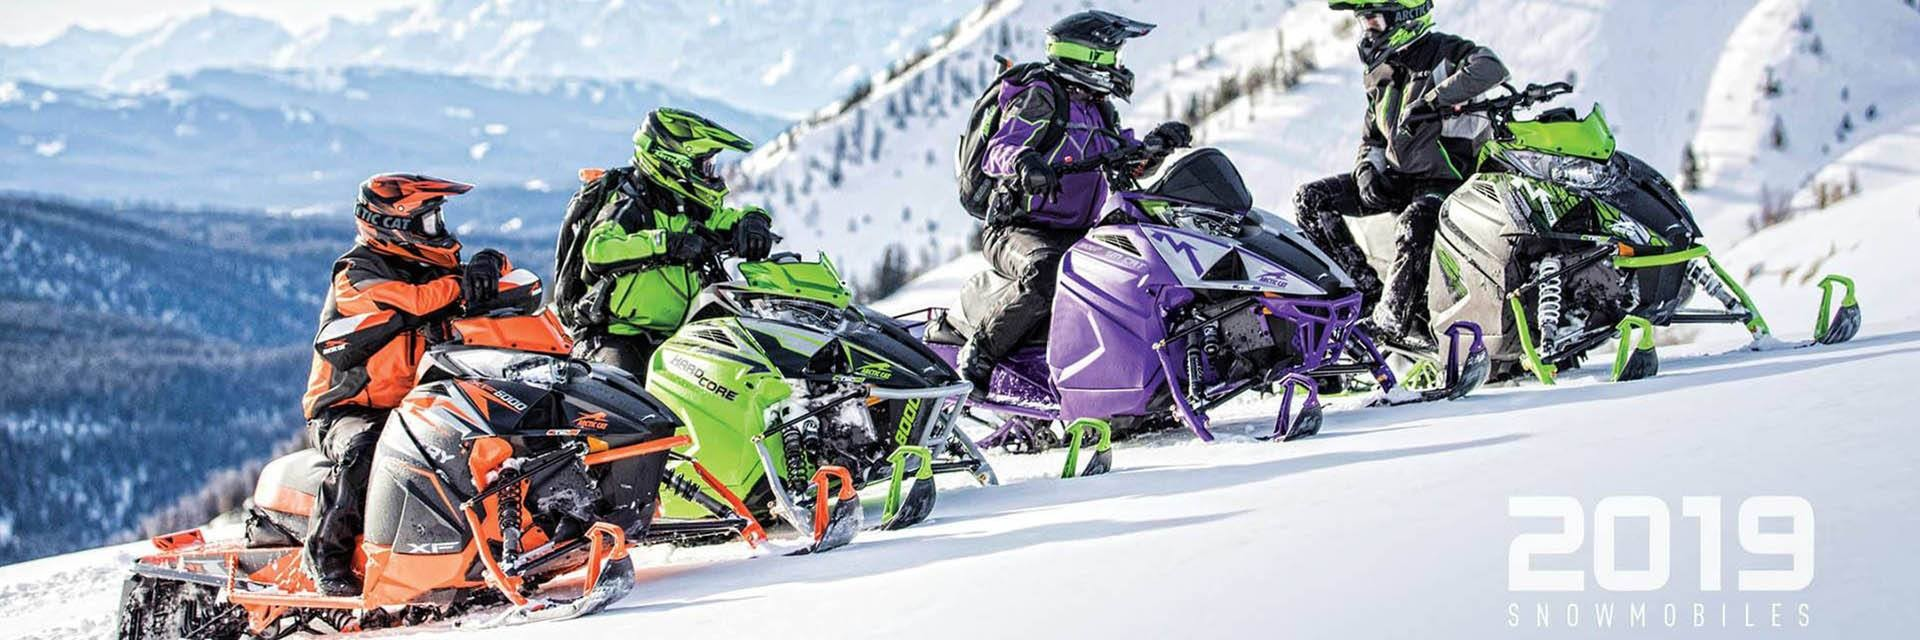 Shop the 2019 Arctic Cat Line-Up at Arctic Cat of Wausau in Rothschild, WI